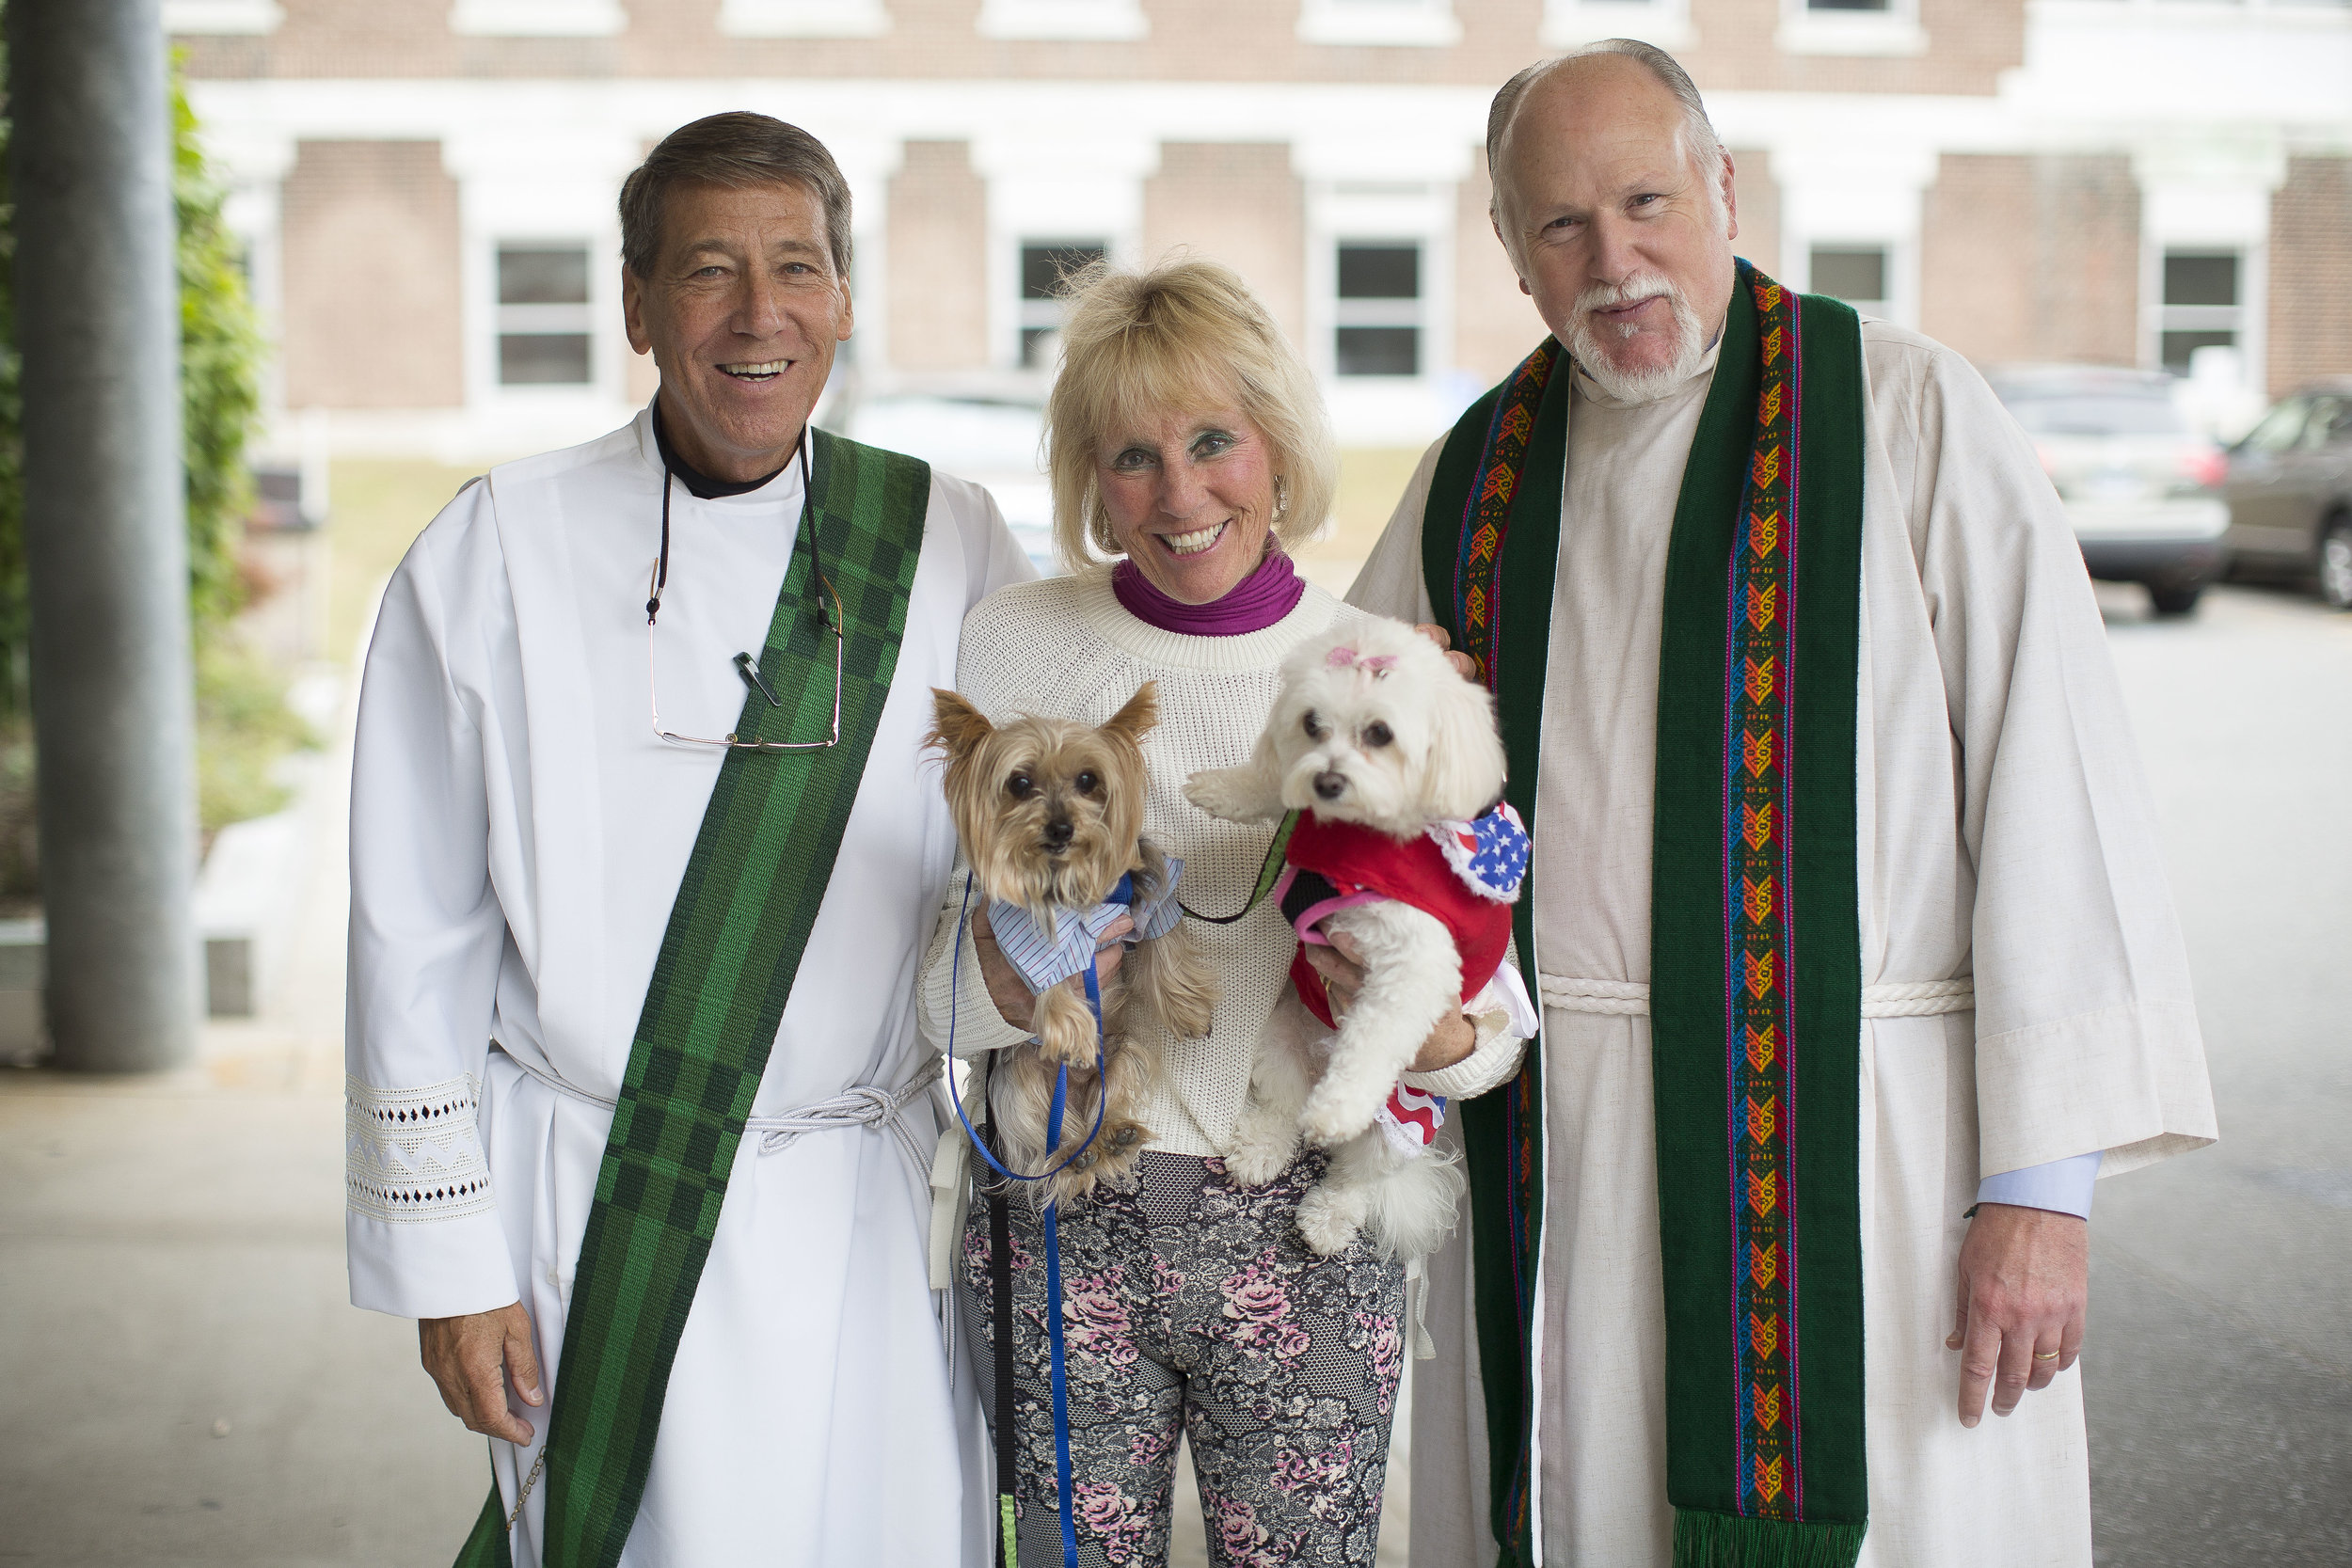 A deacon, reverend, and pet owner at Waterbury Hospital